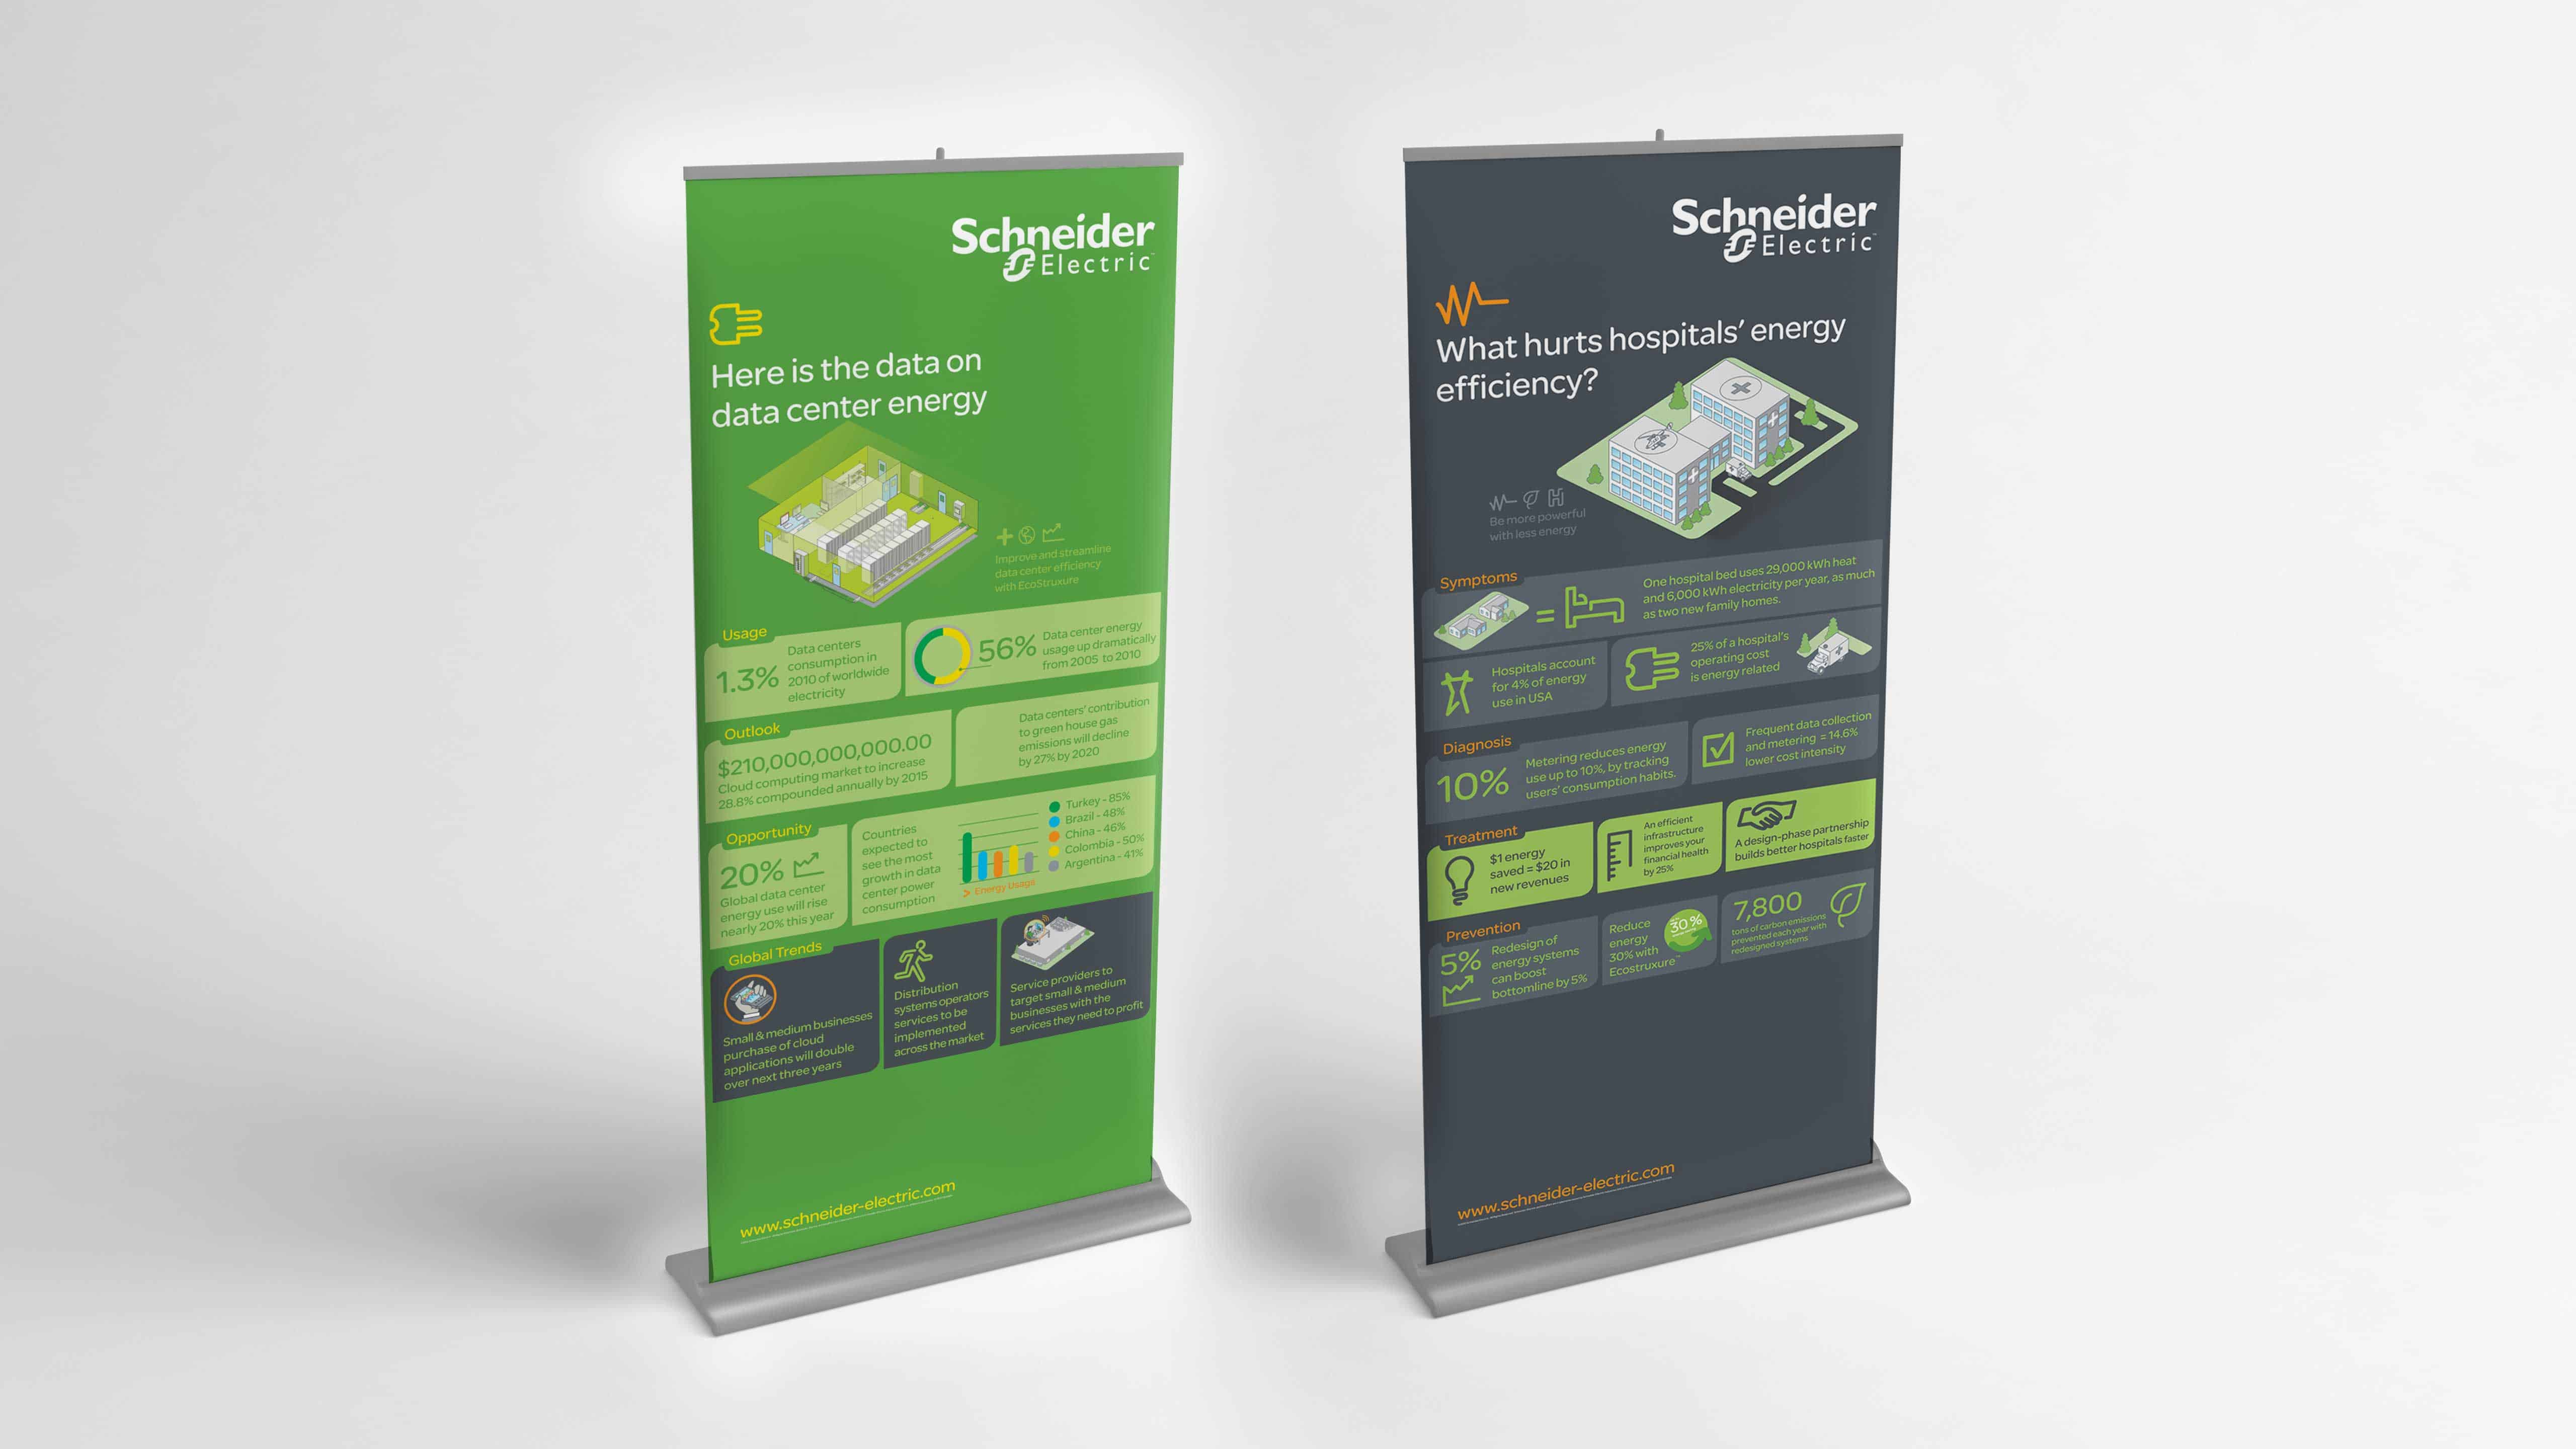 Creative Design Agency Vancouver, Bannerstand Schneider Electric